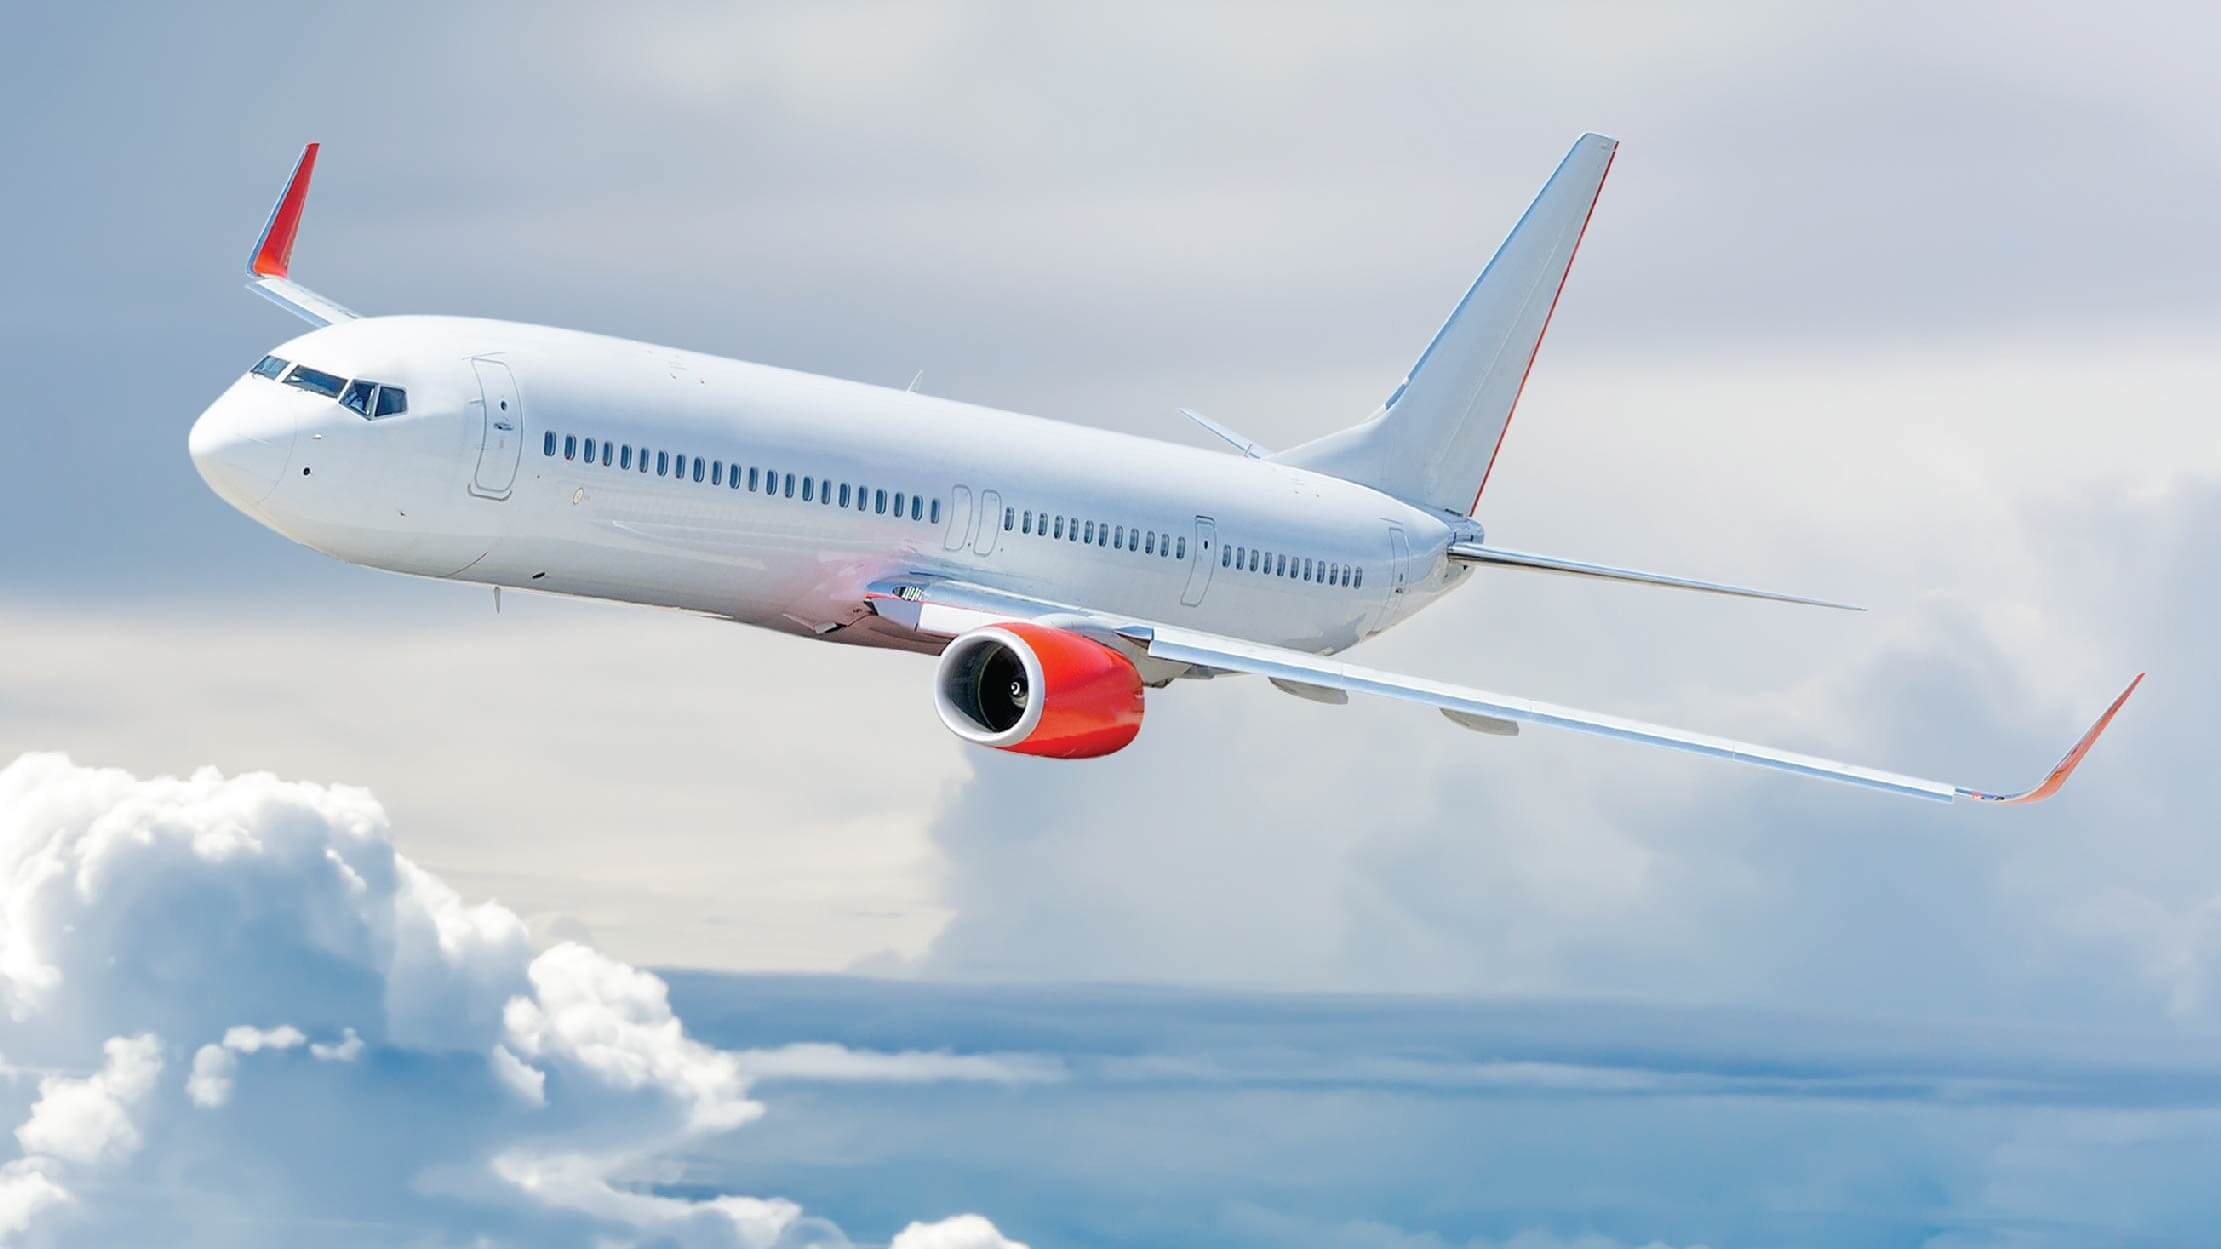 Mobile Testing for a Leading Airline Company